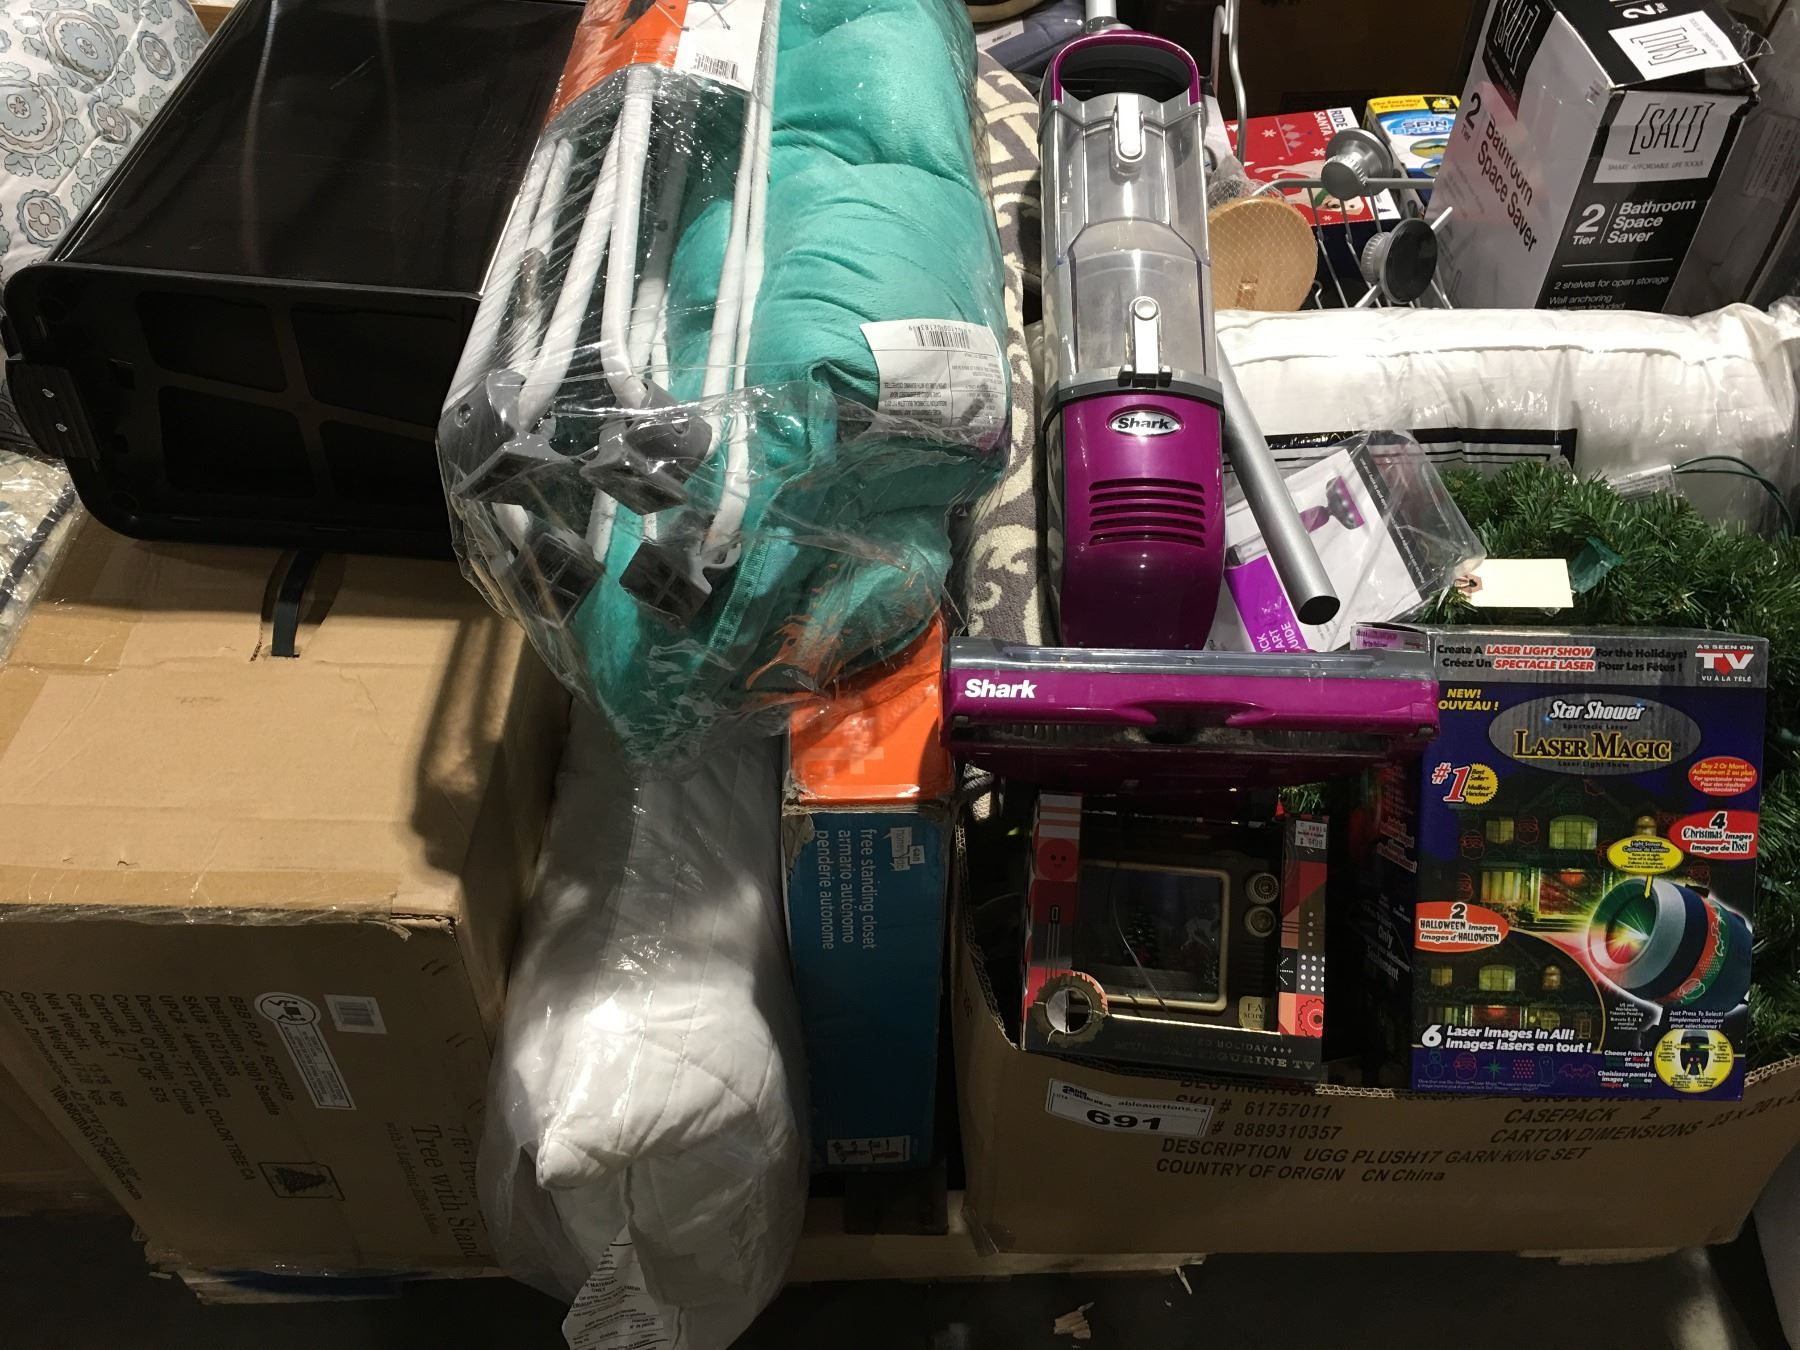 PALLET LOT OF ASSORTED DEPARTMENT STORE ITEMS - Able Auctions